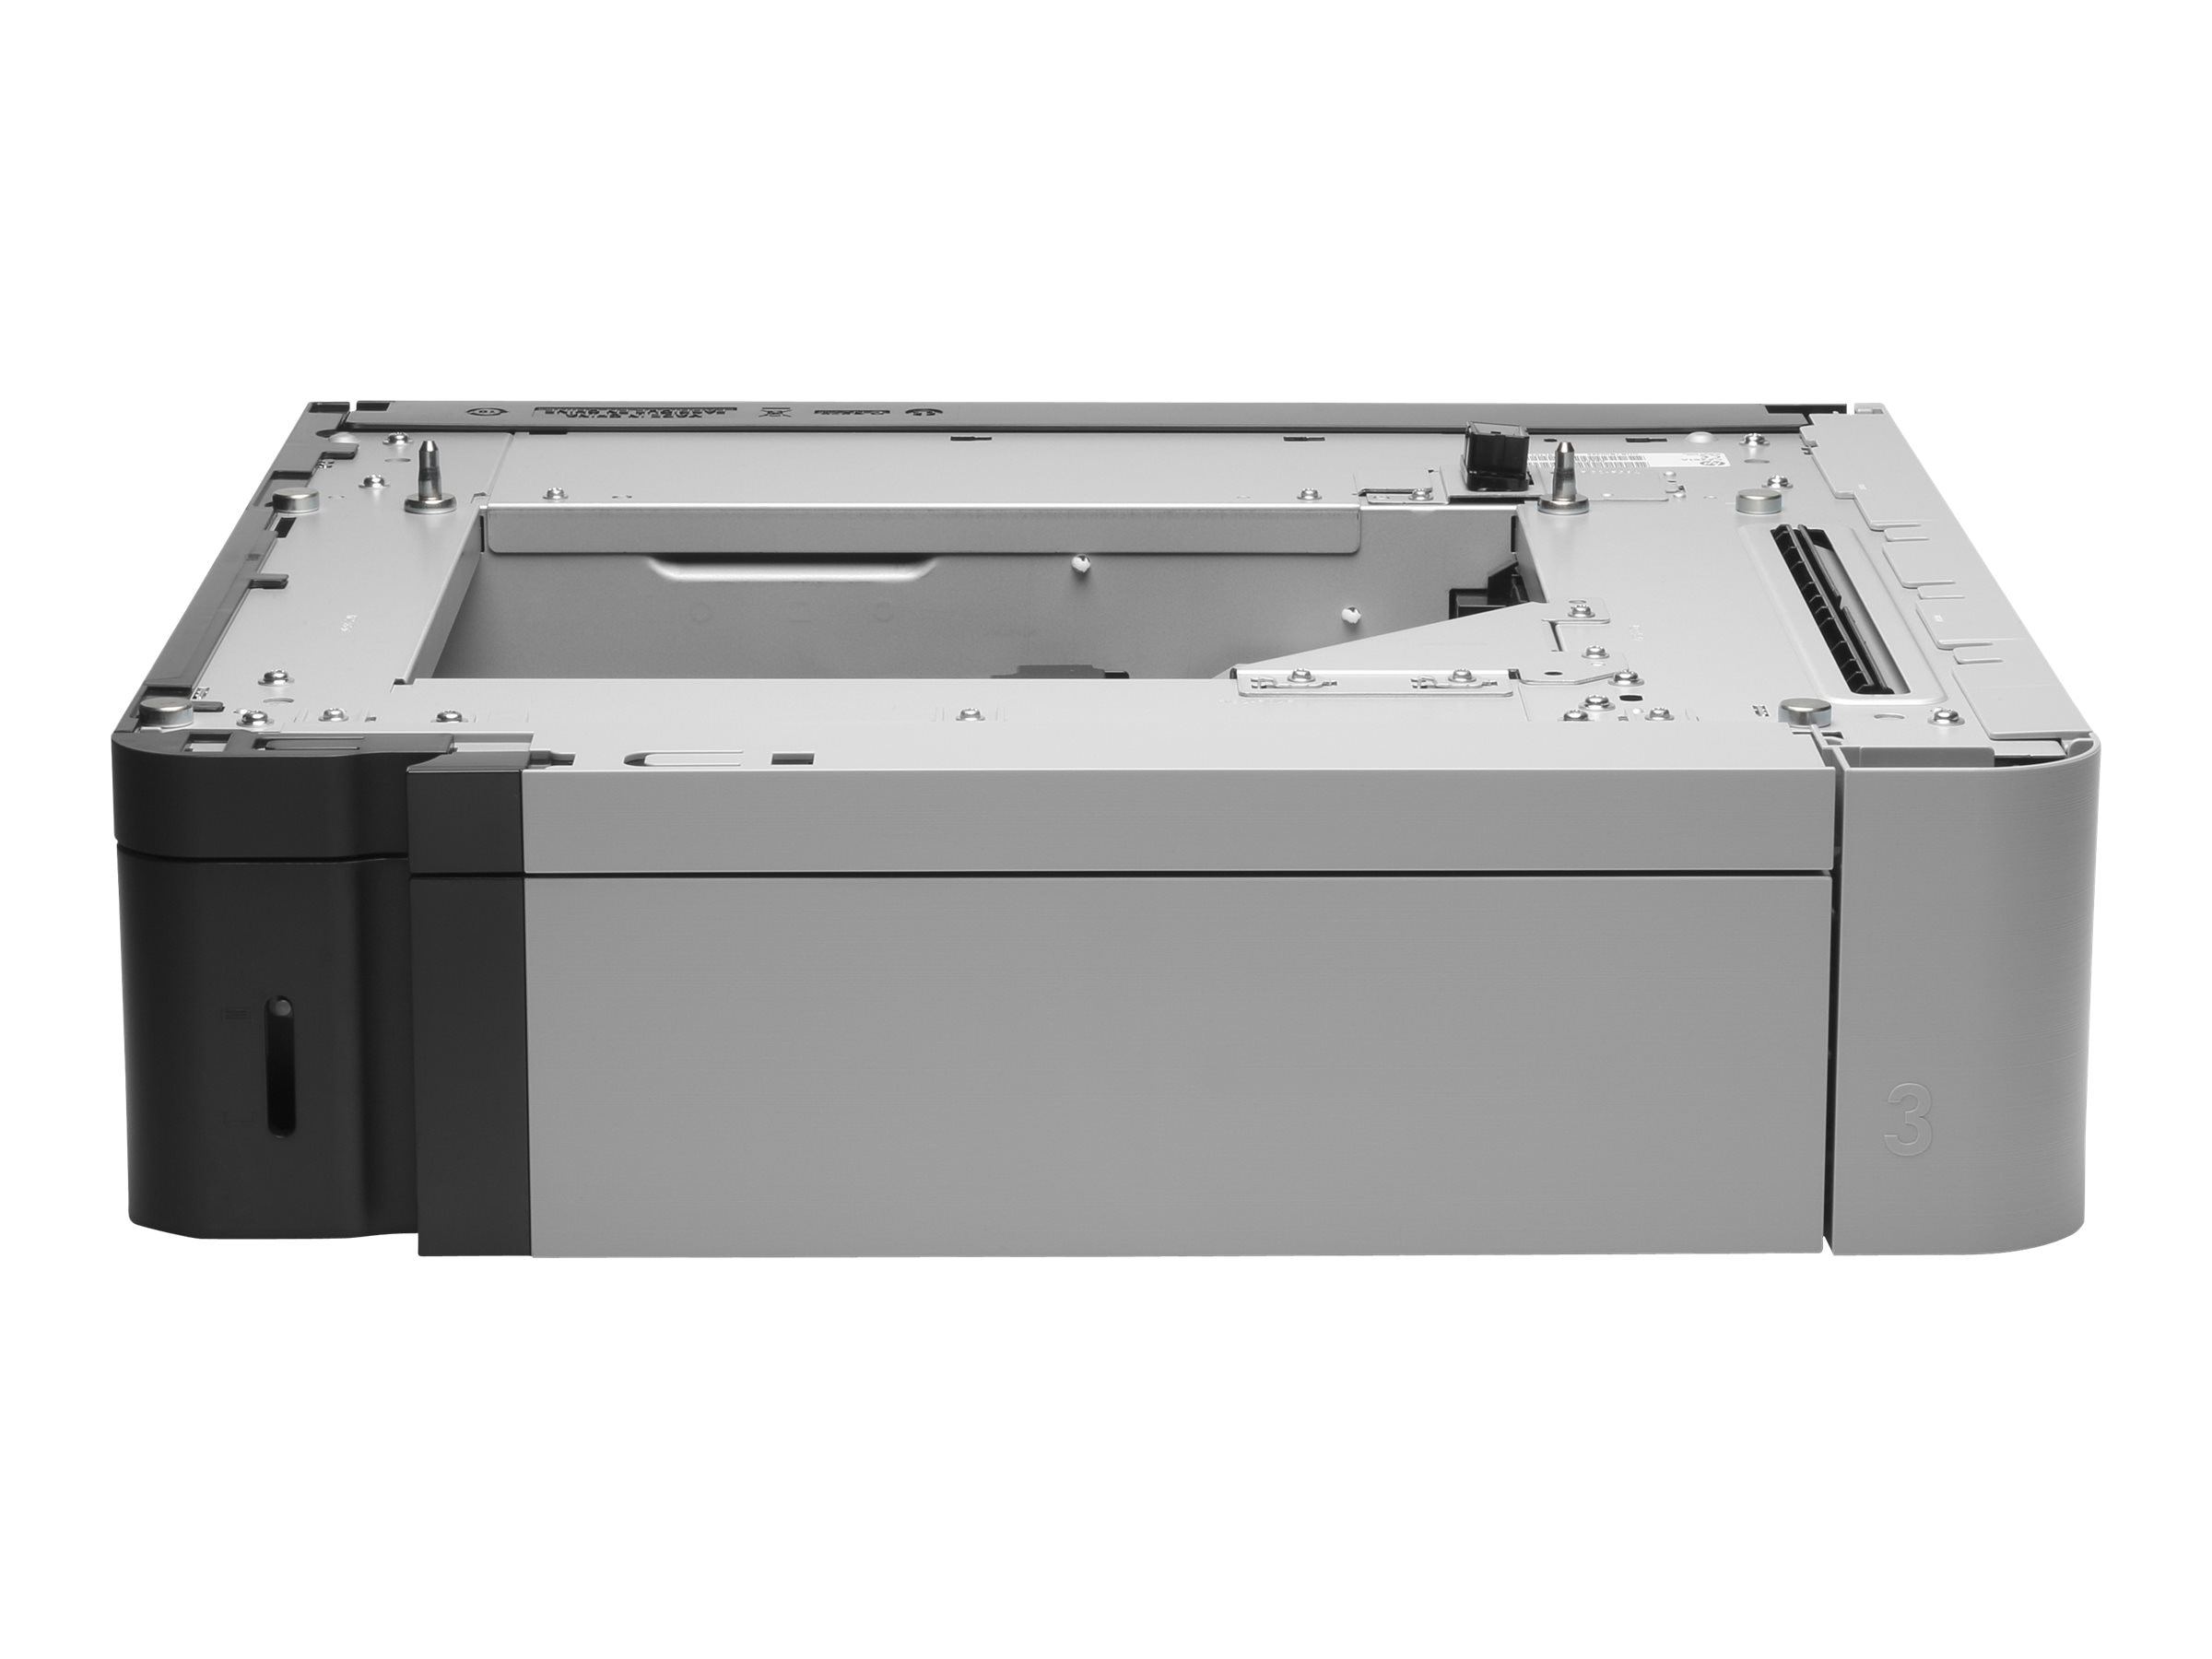 HP LaserJet 500-Sheet Paper Tray for HP Color LaserJet Enterprise M651 & M680dn Series, CZ261A, 16850261, Printers - Input Trays/Feeders